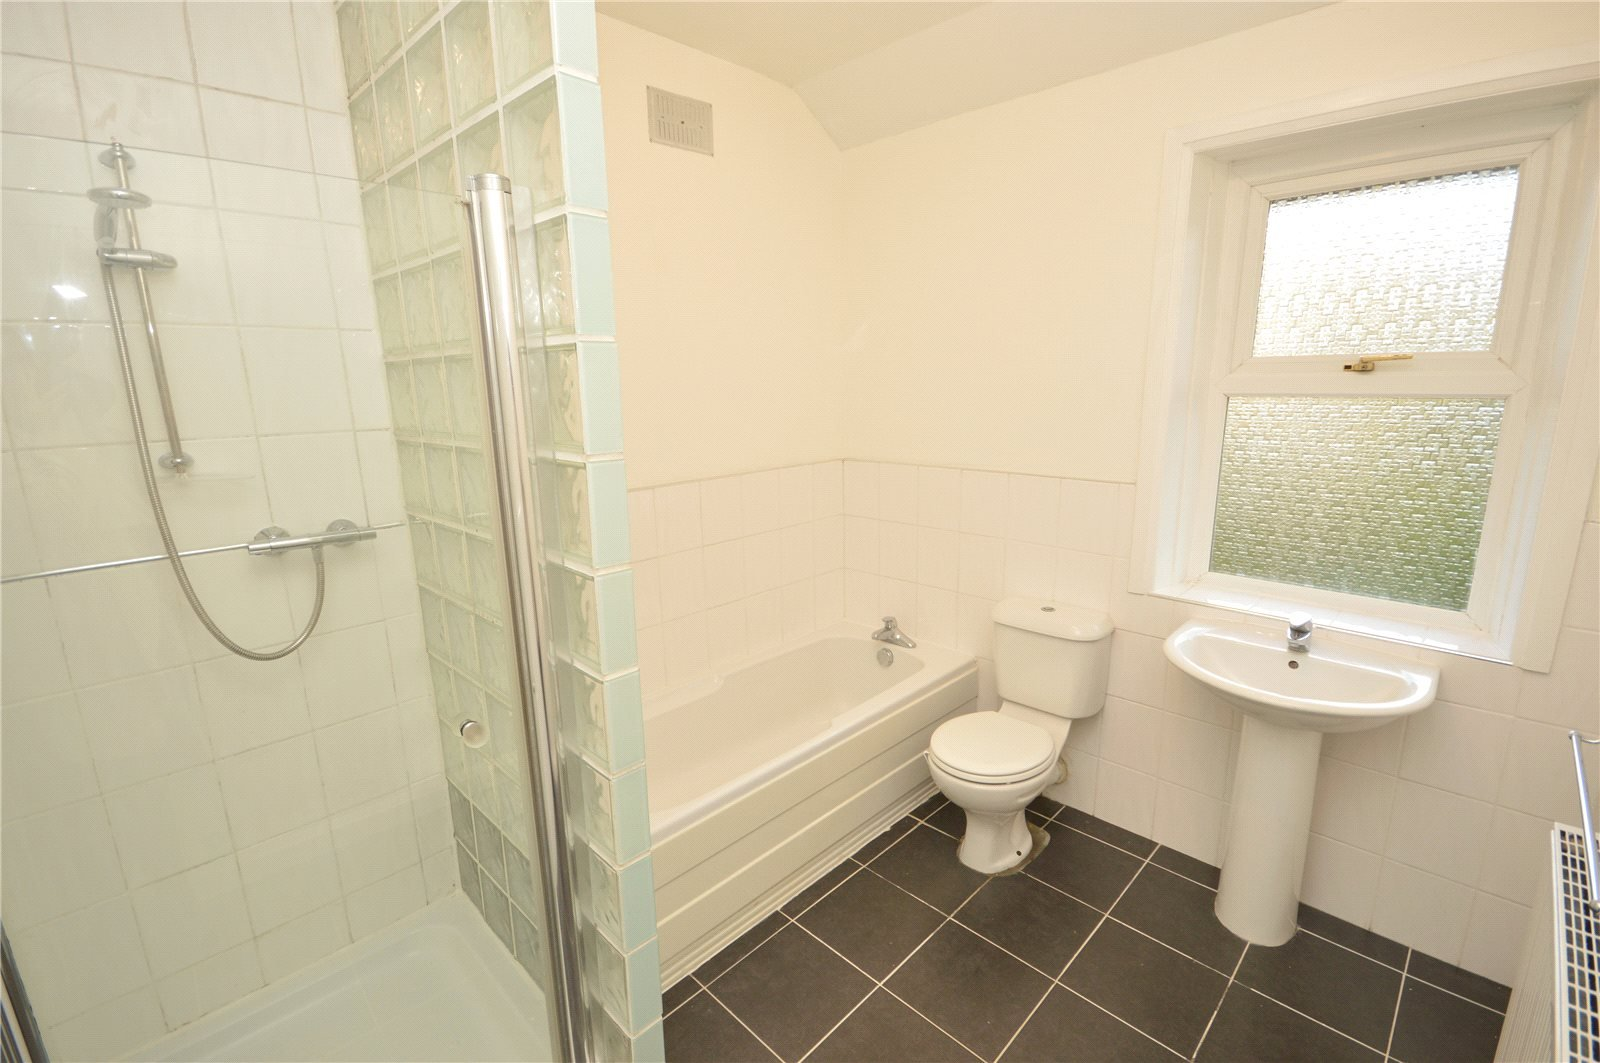 Property for sale in Guiseley, interior bathroom